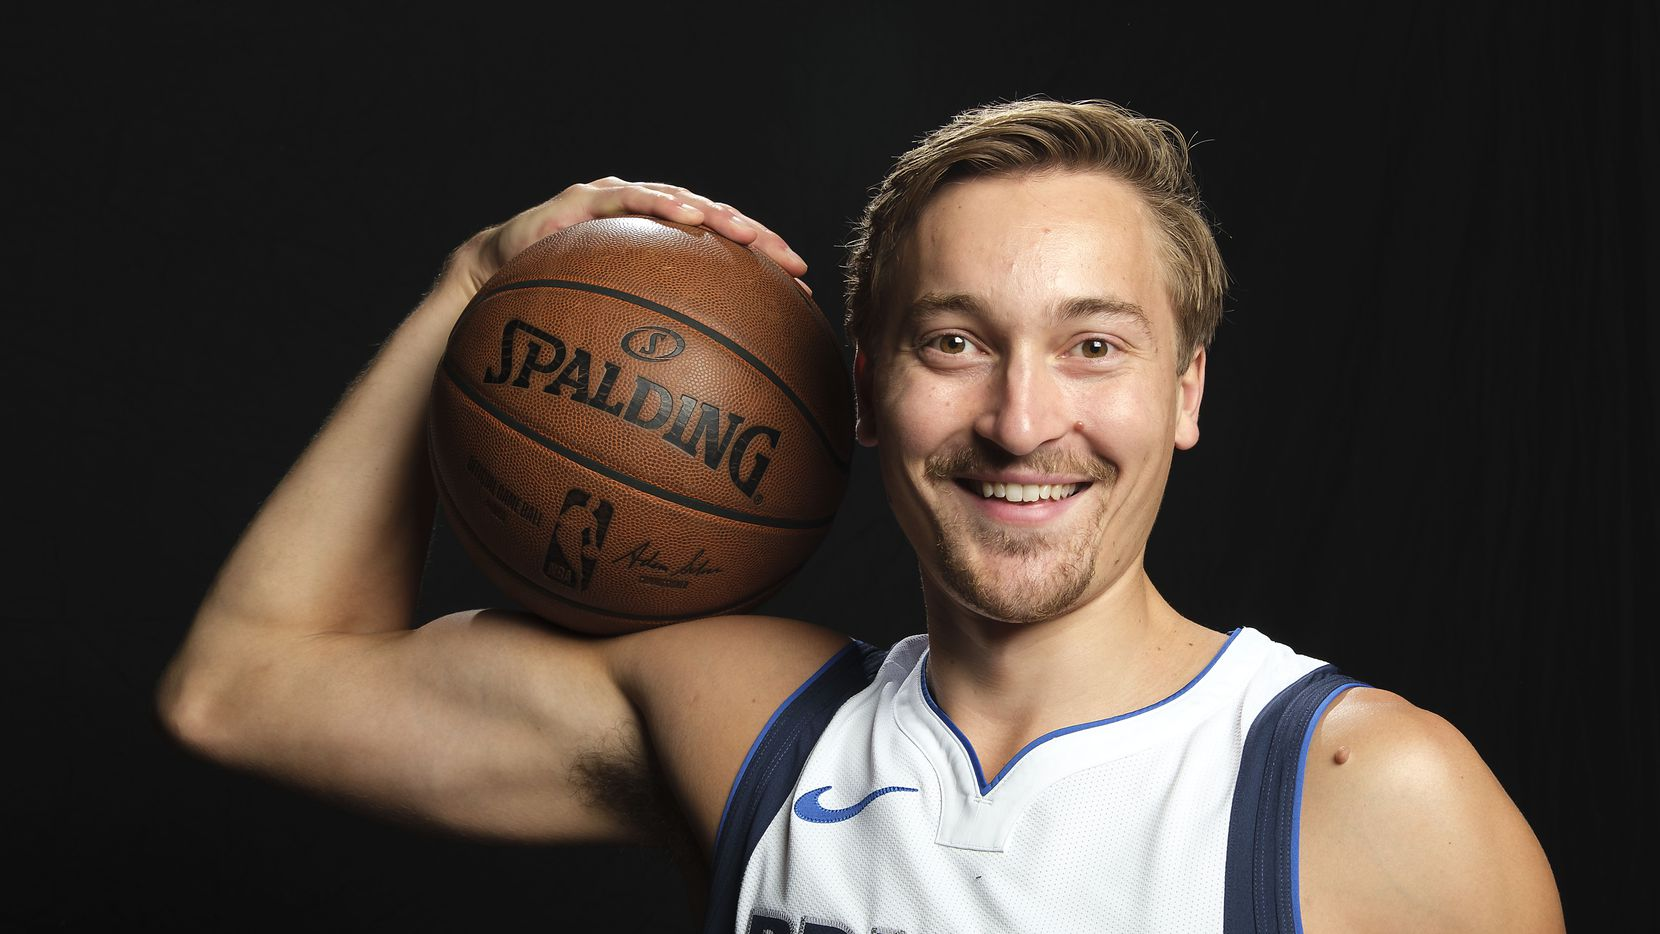 Dallas Mavericks guard Ryan Broekhoff  photographed during media day activities at American Airlines Center on Monday, Sept. 30, 2019, in Dallas.